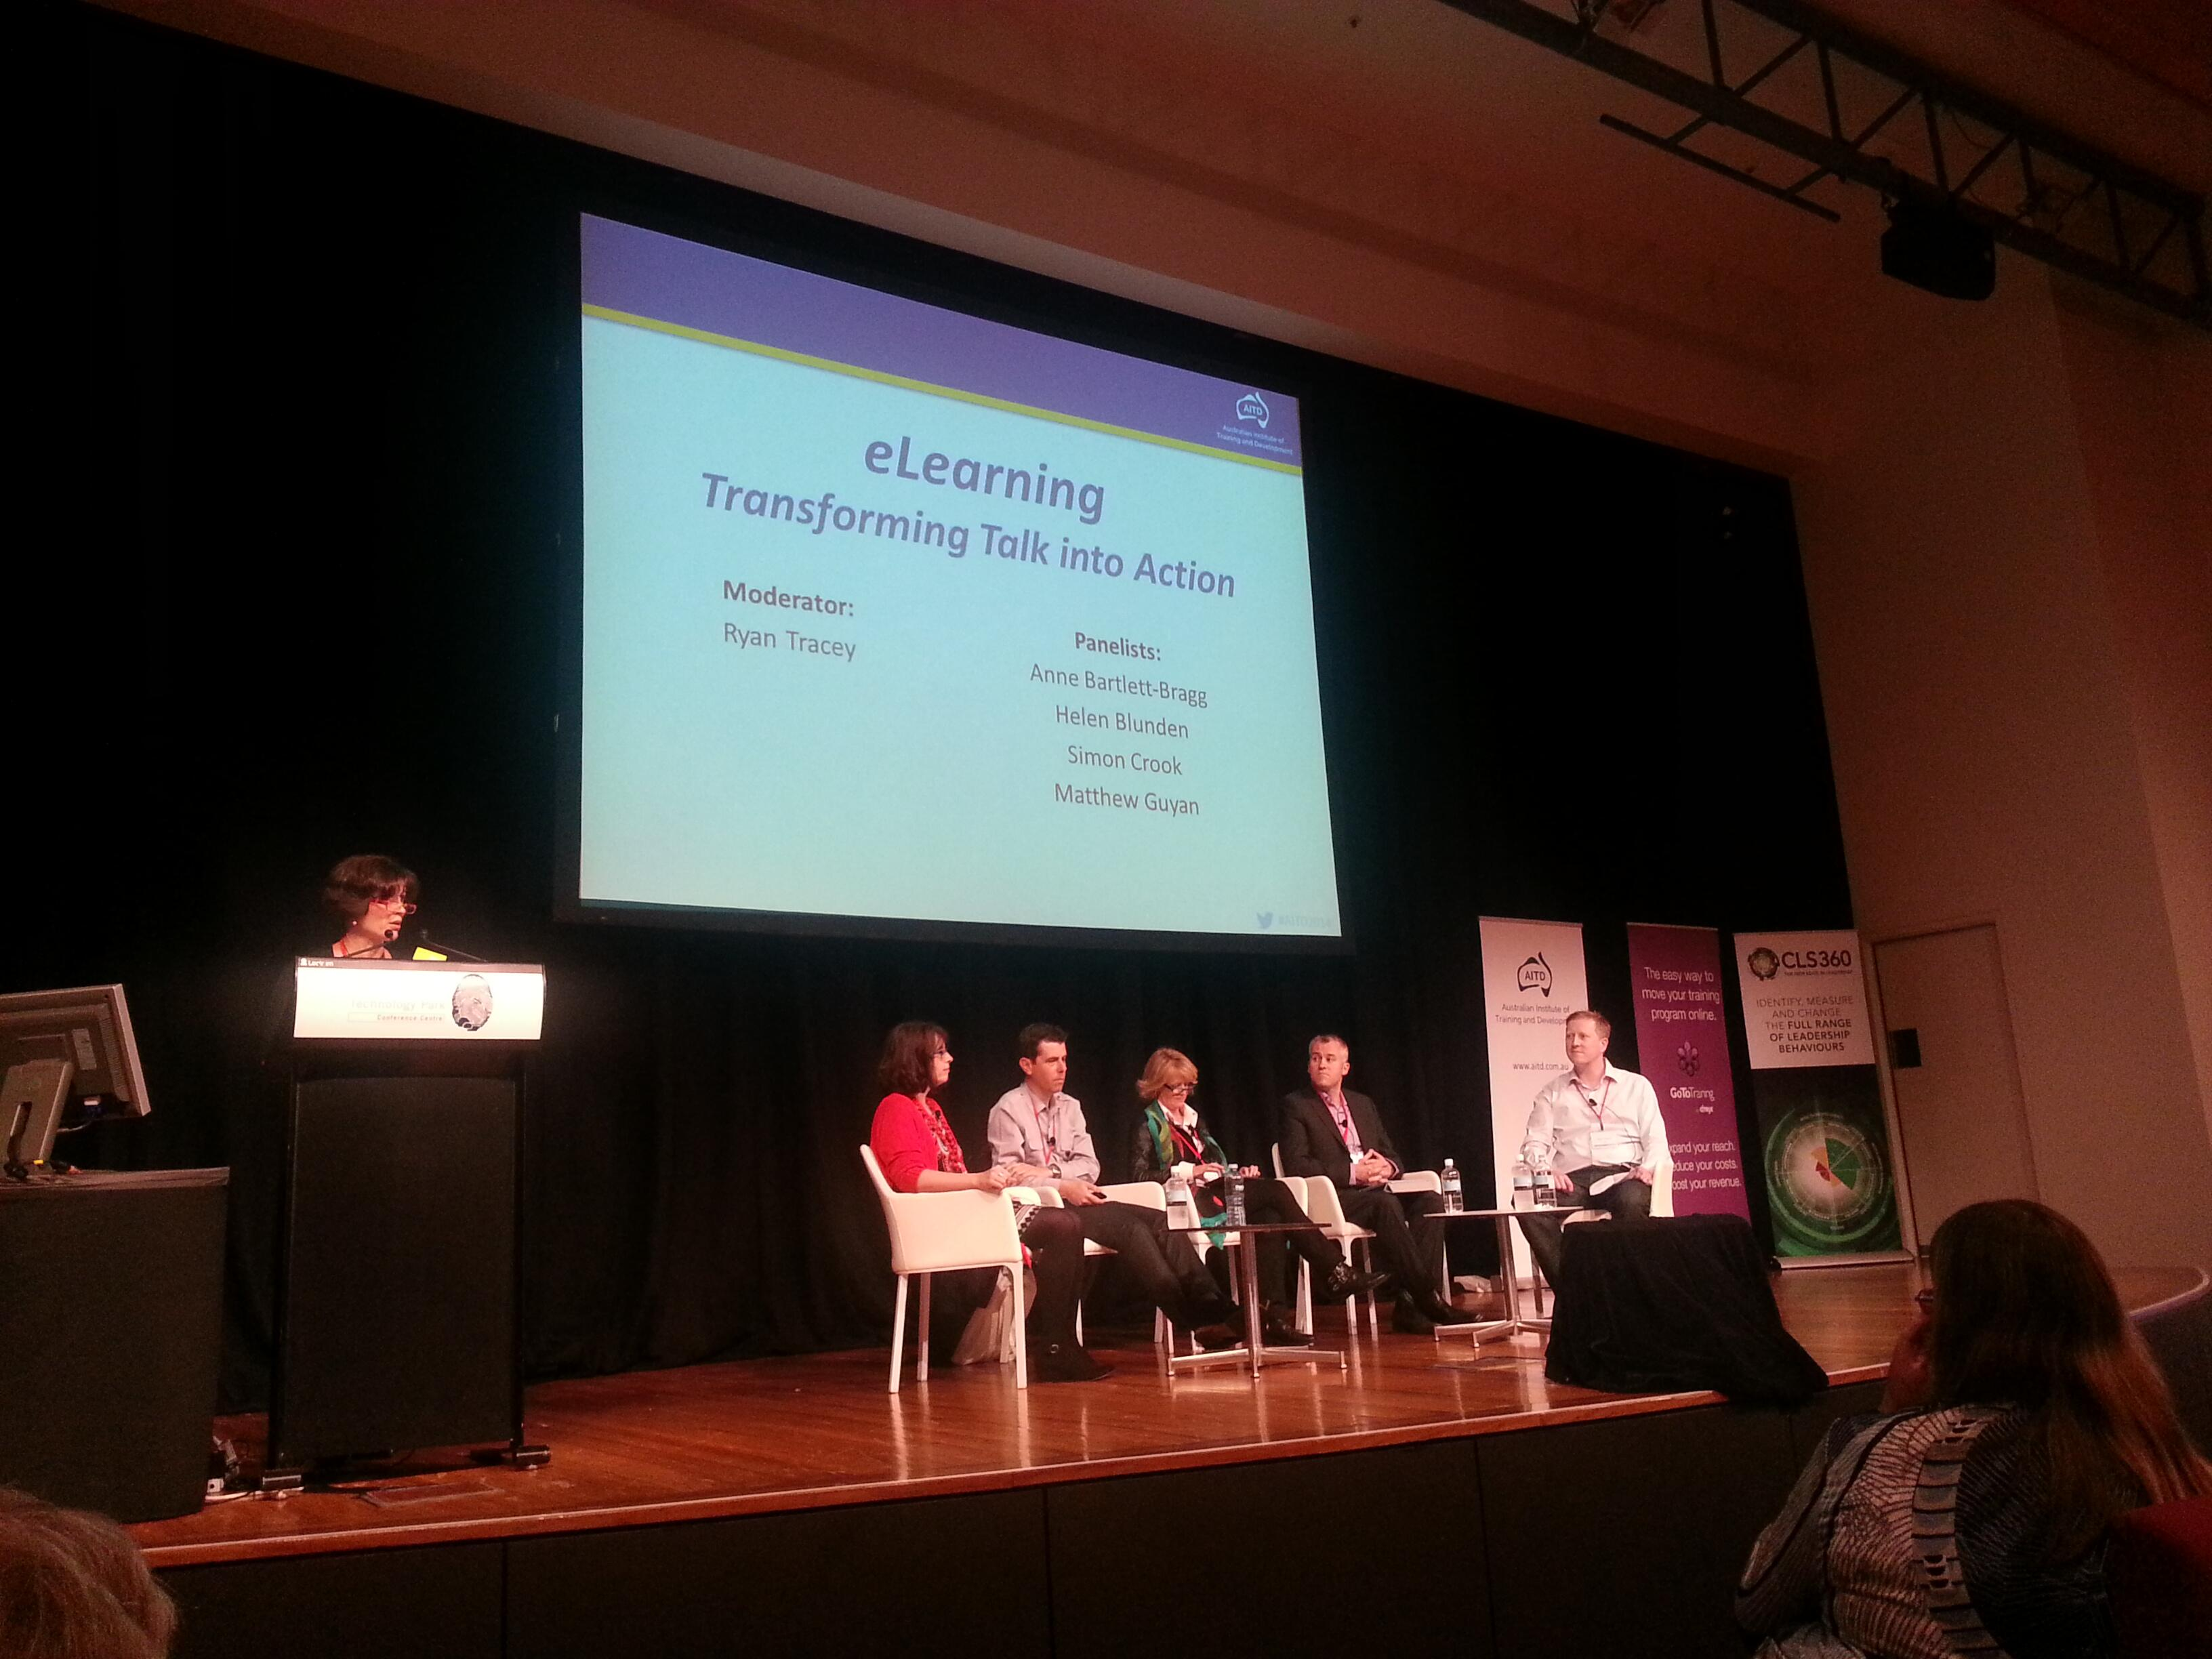 The e-learning panel at AITD2014